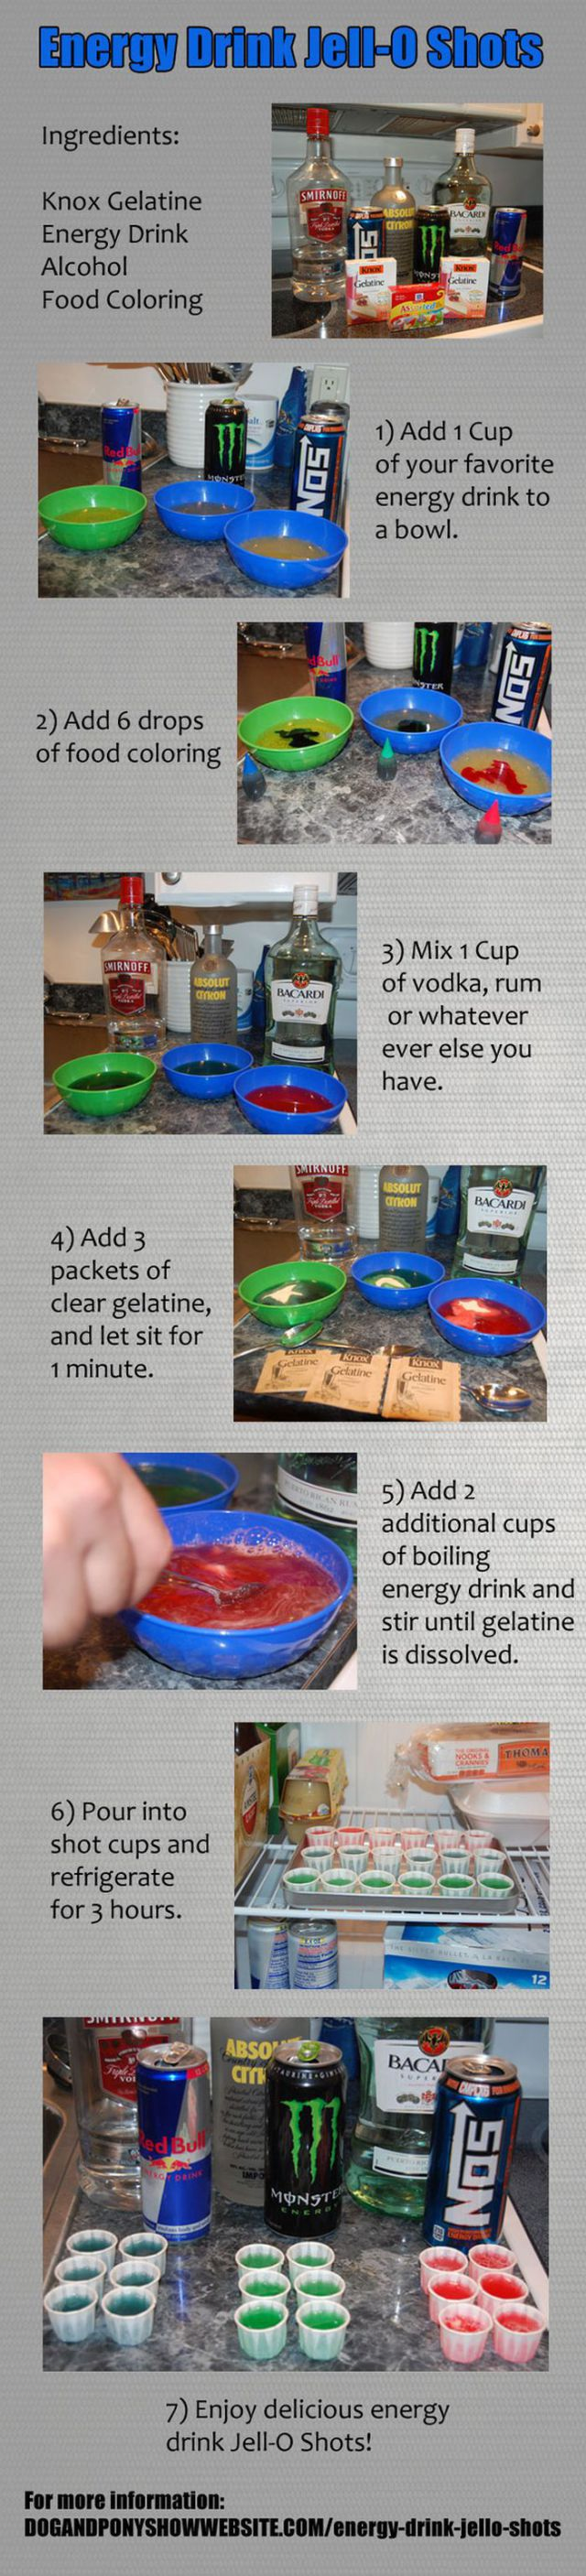 How to Make Energy Drink Jell-O Shots